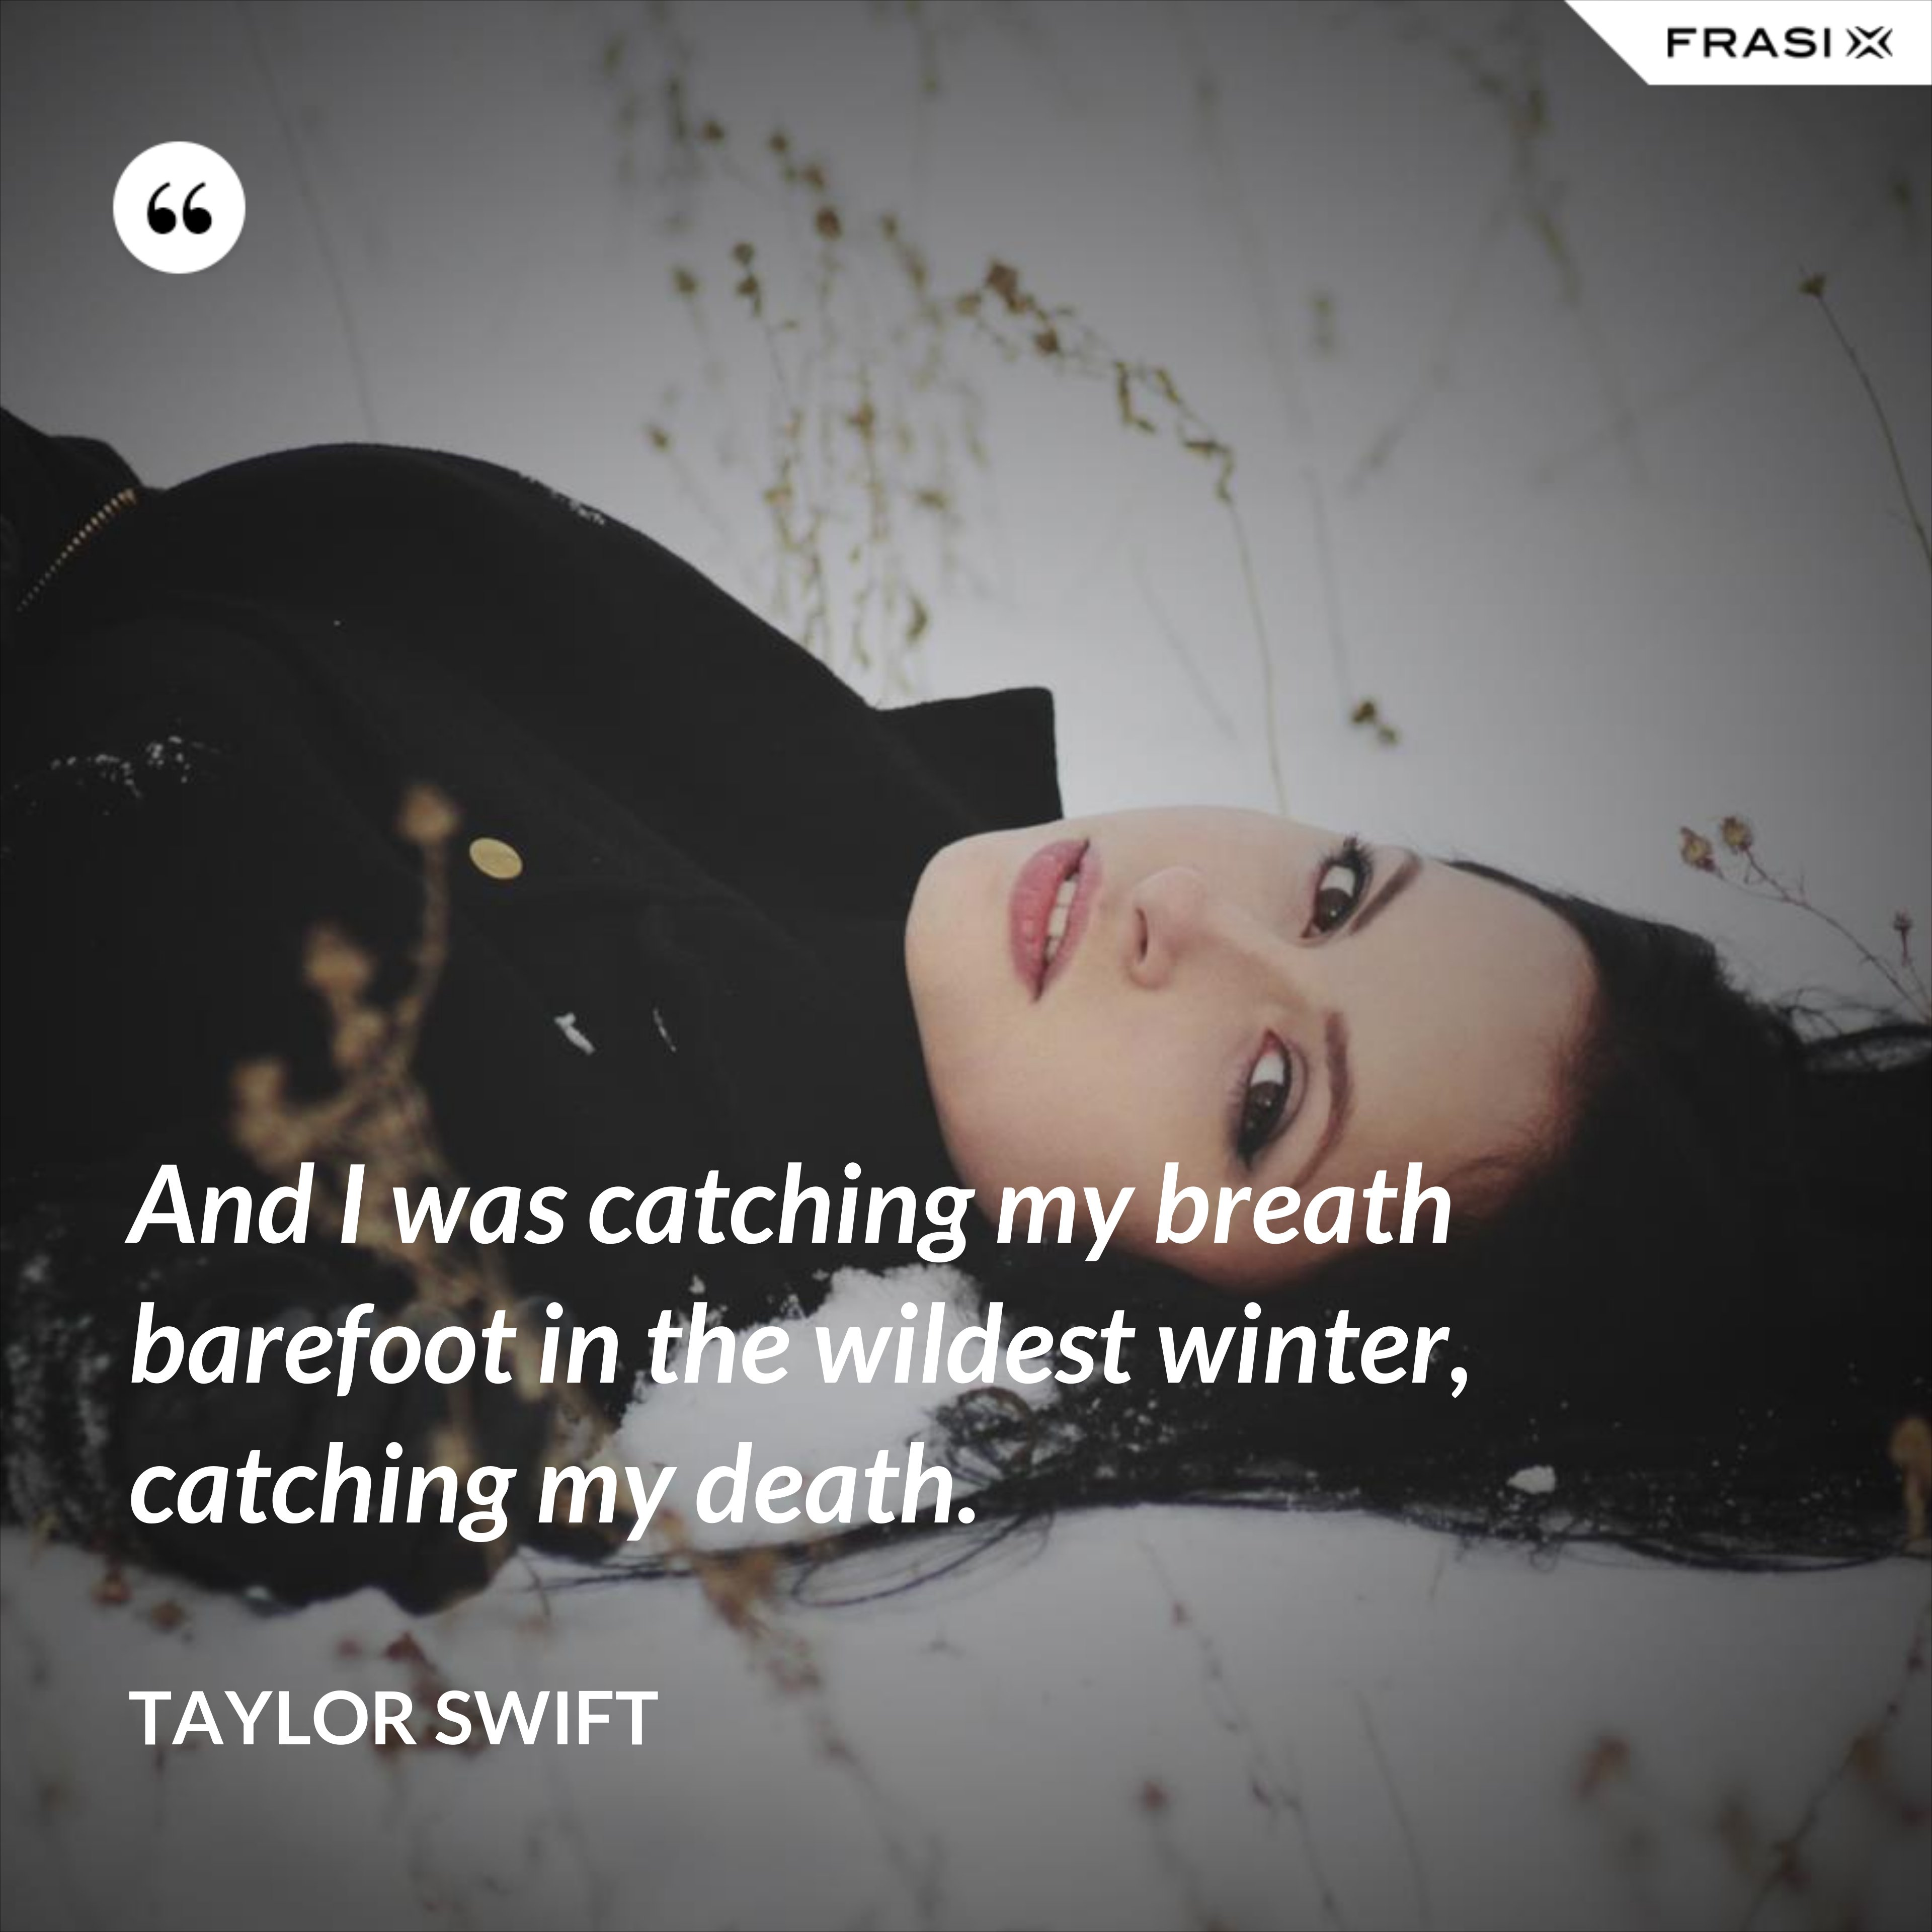 And I was catching my breath barefoot in the wildest winter, catching my death. - Taylor Swift